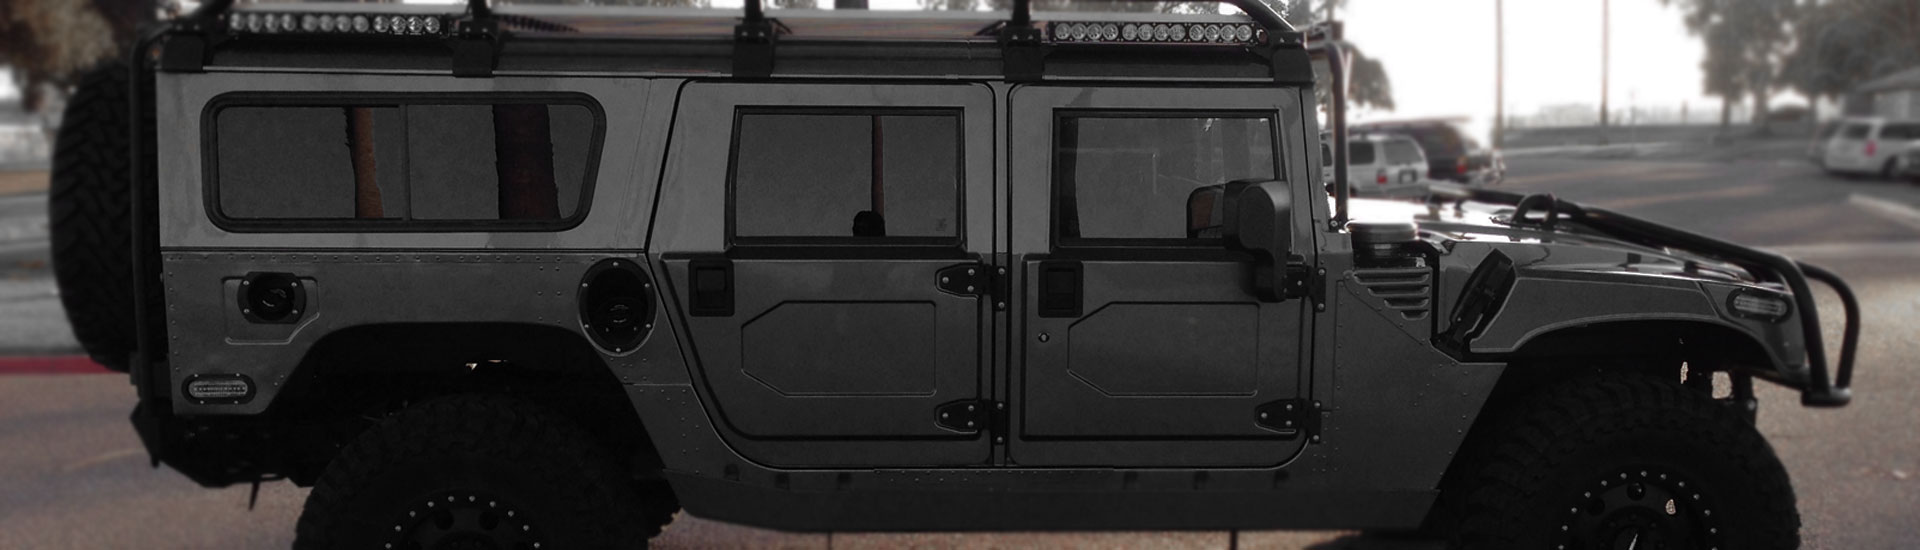 2000 Hummer H1 Window Tint